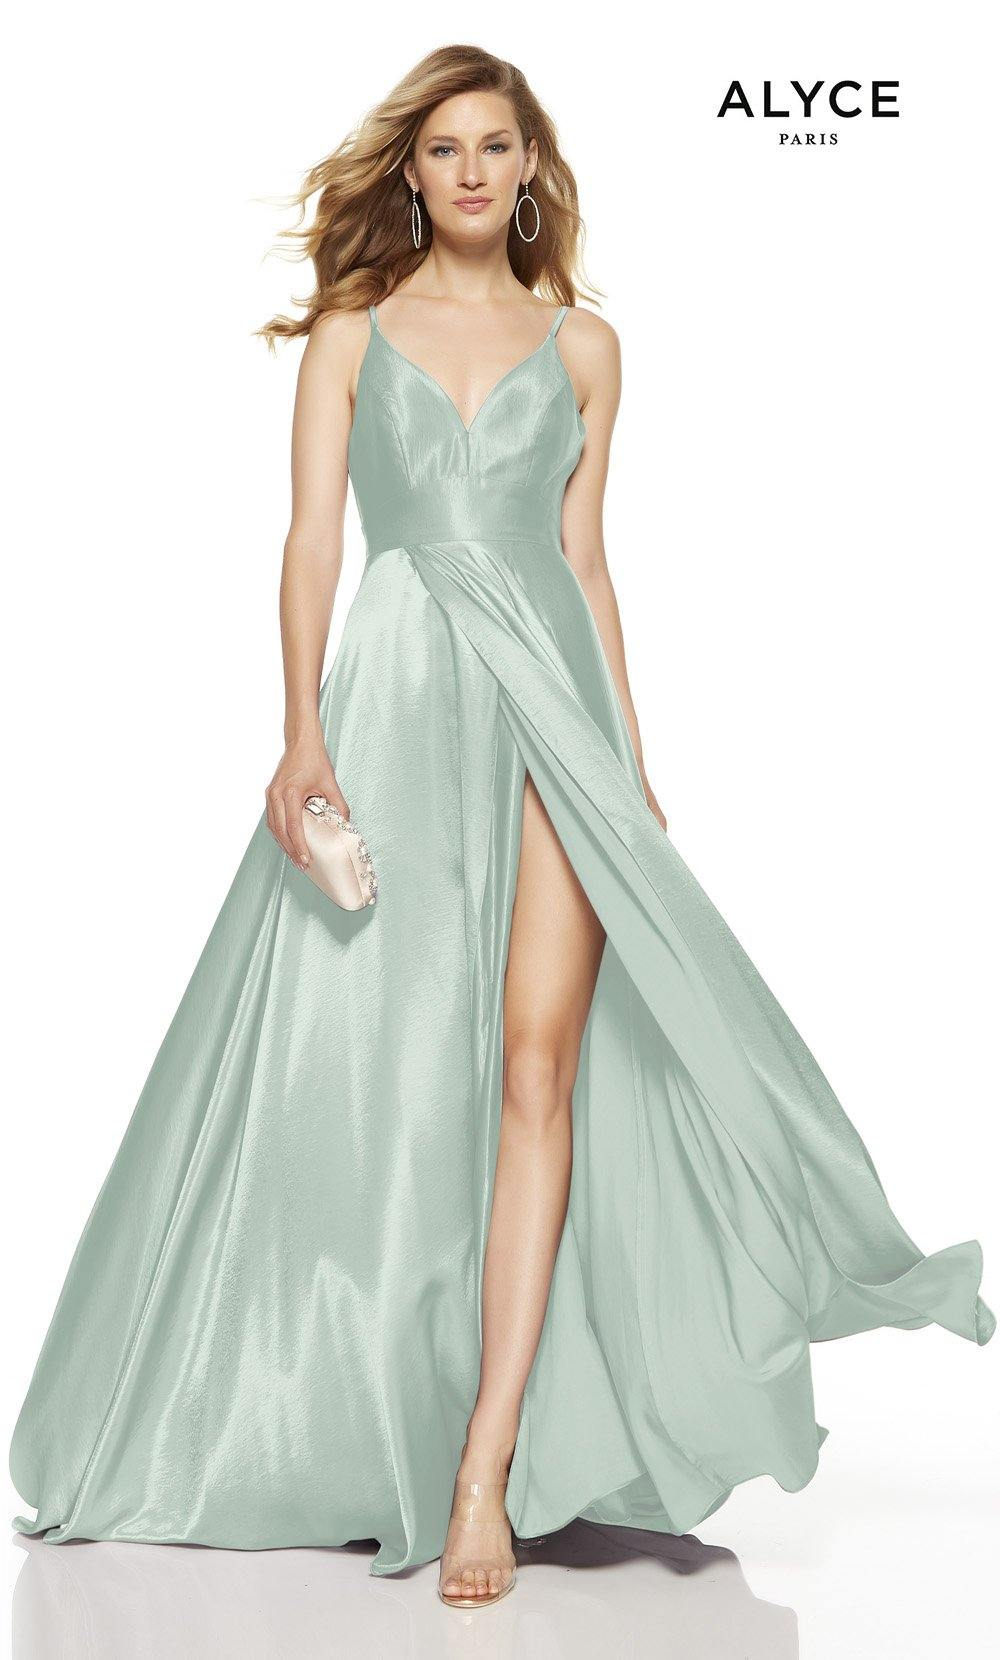 Sea Glass formal dress with a V-neck and a high slit